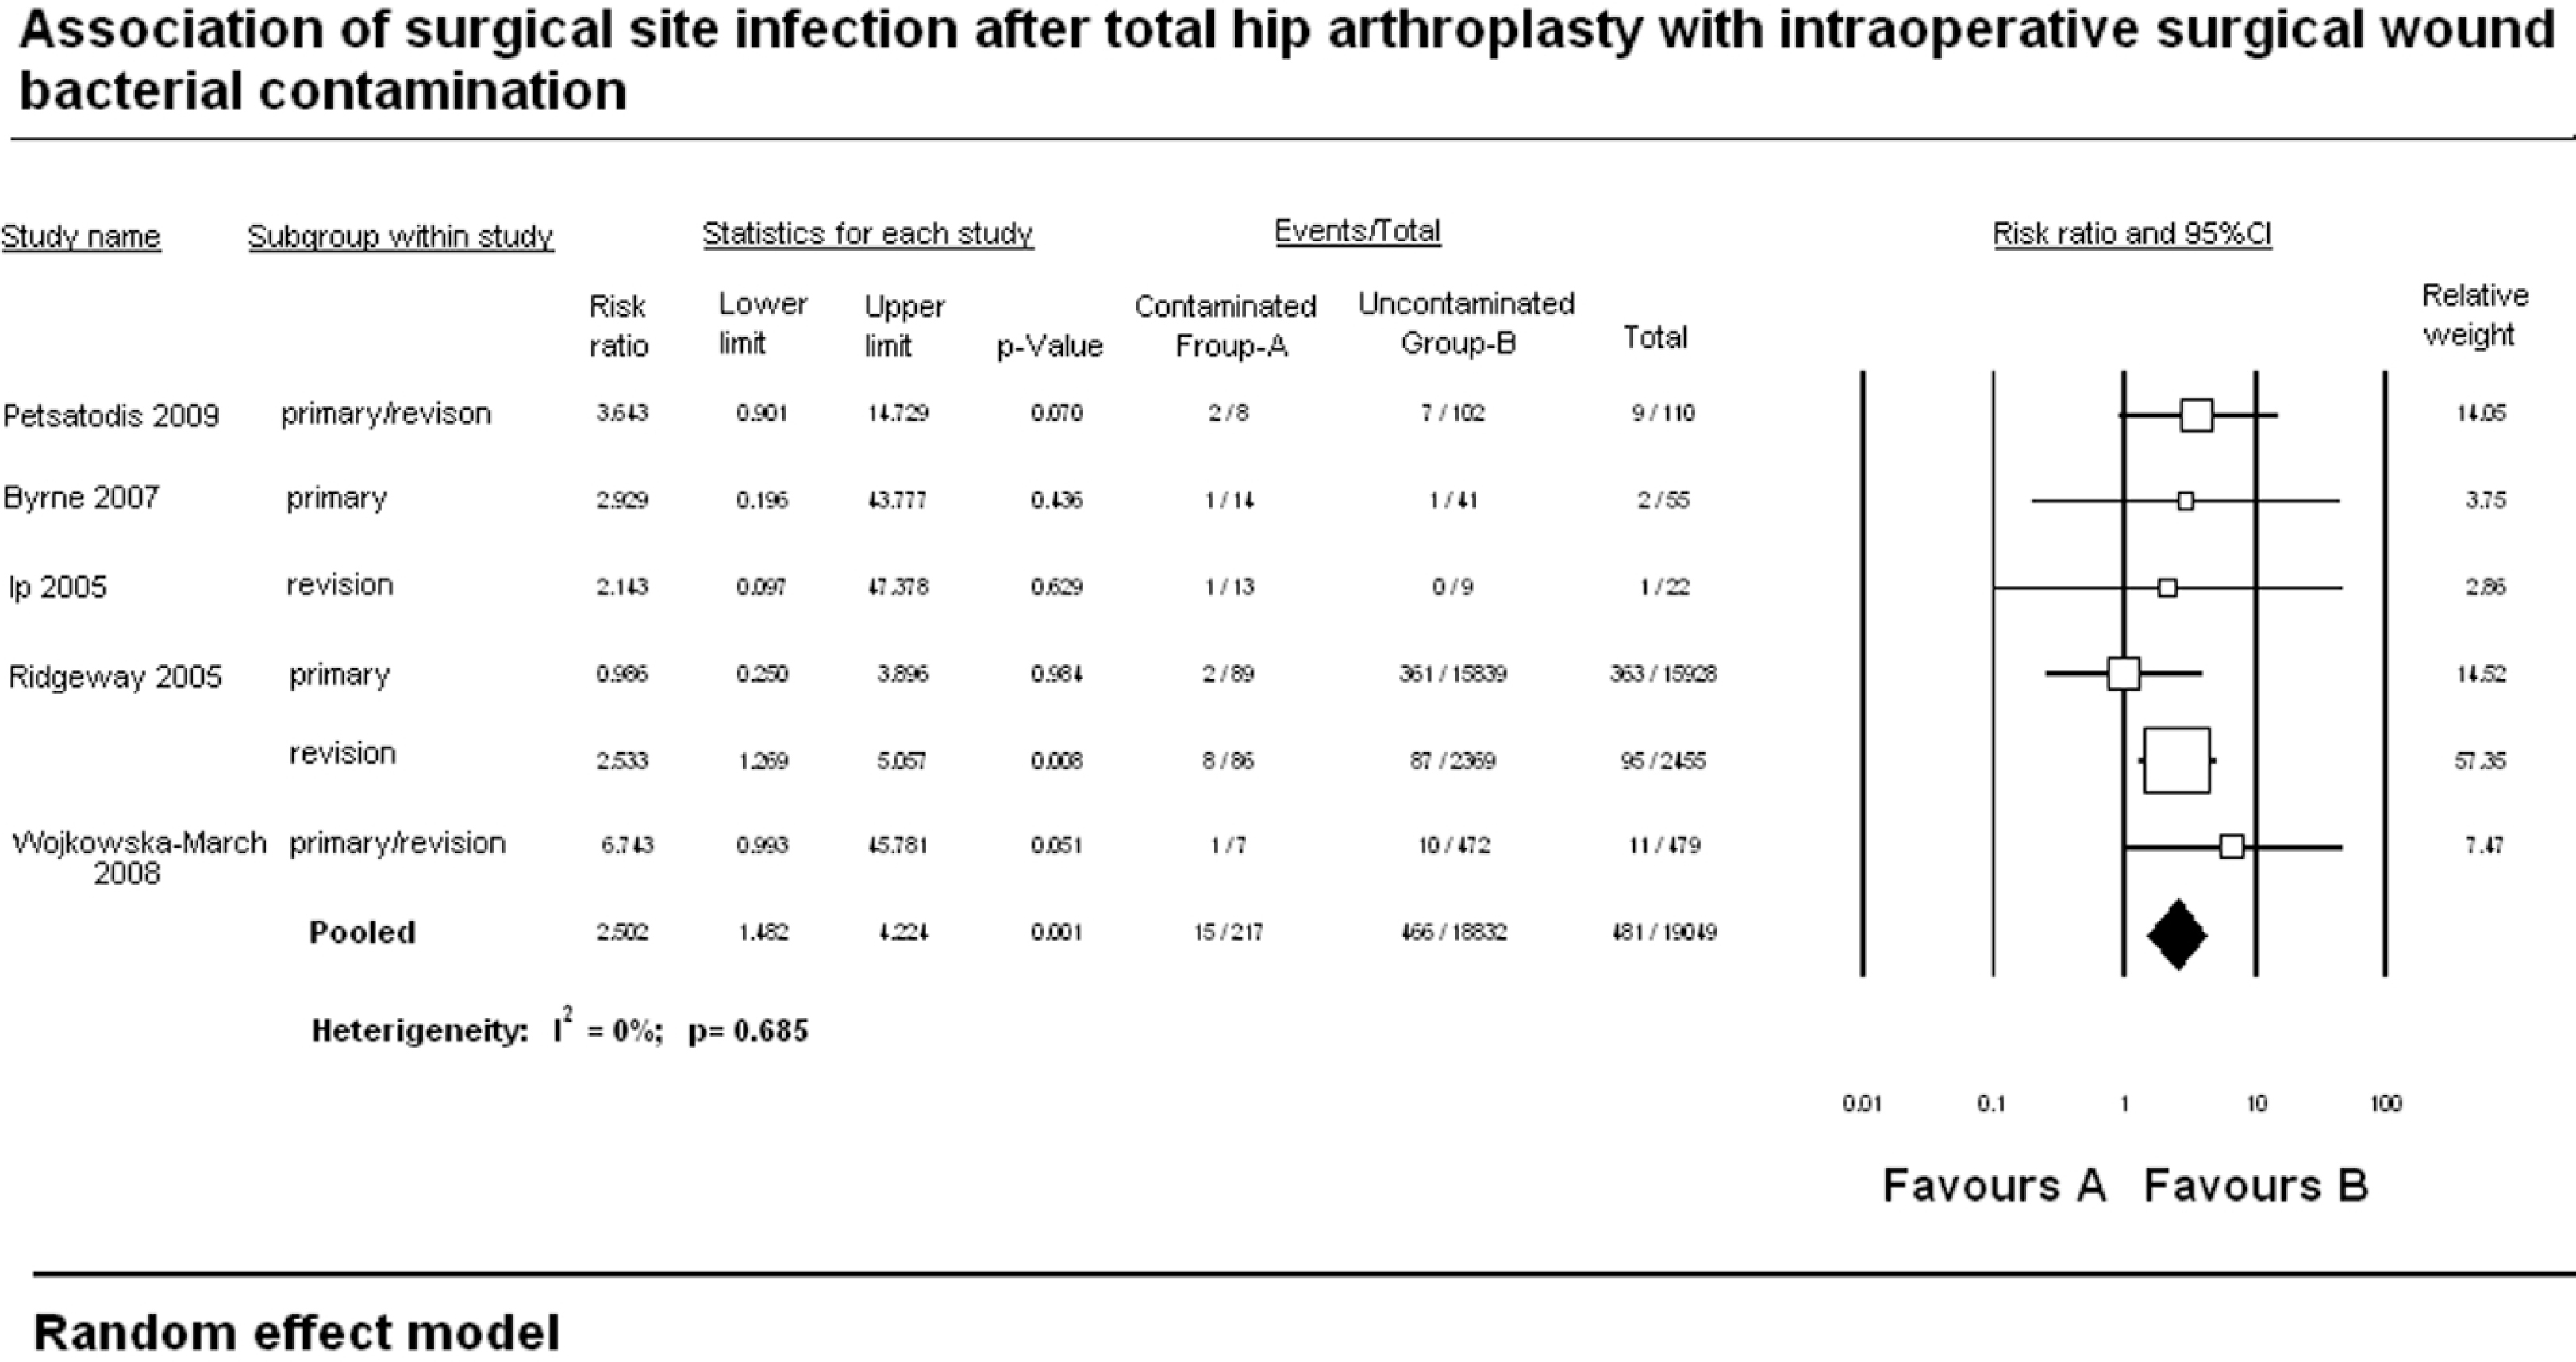 Association of surgical site infection after total hip arthroplasty with intraoperative surgical wound bacterial contaminationRandom effect model